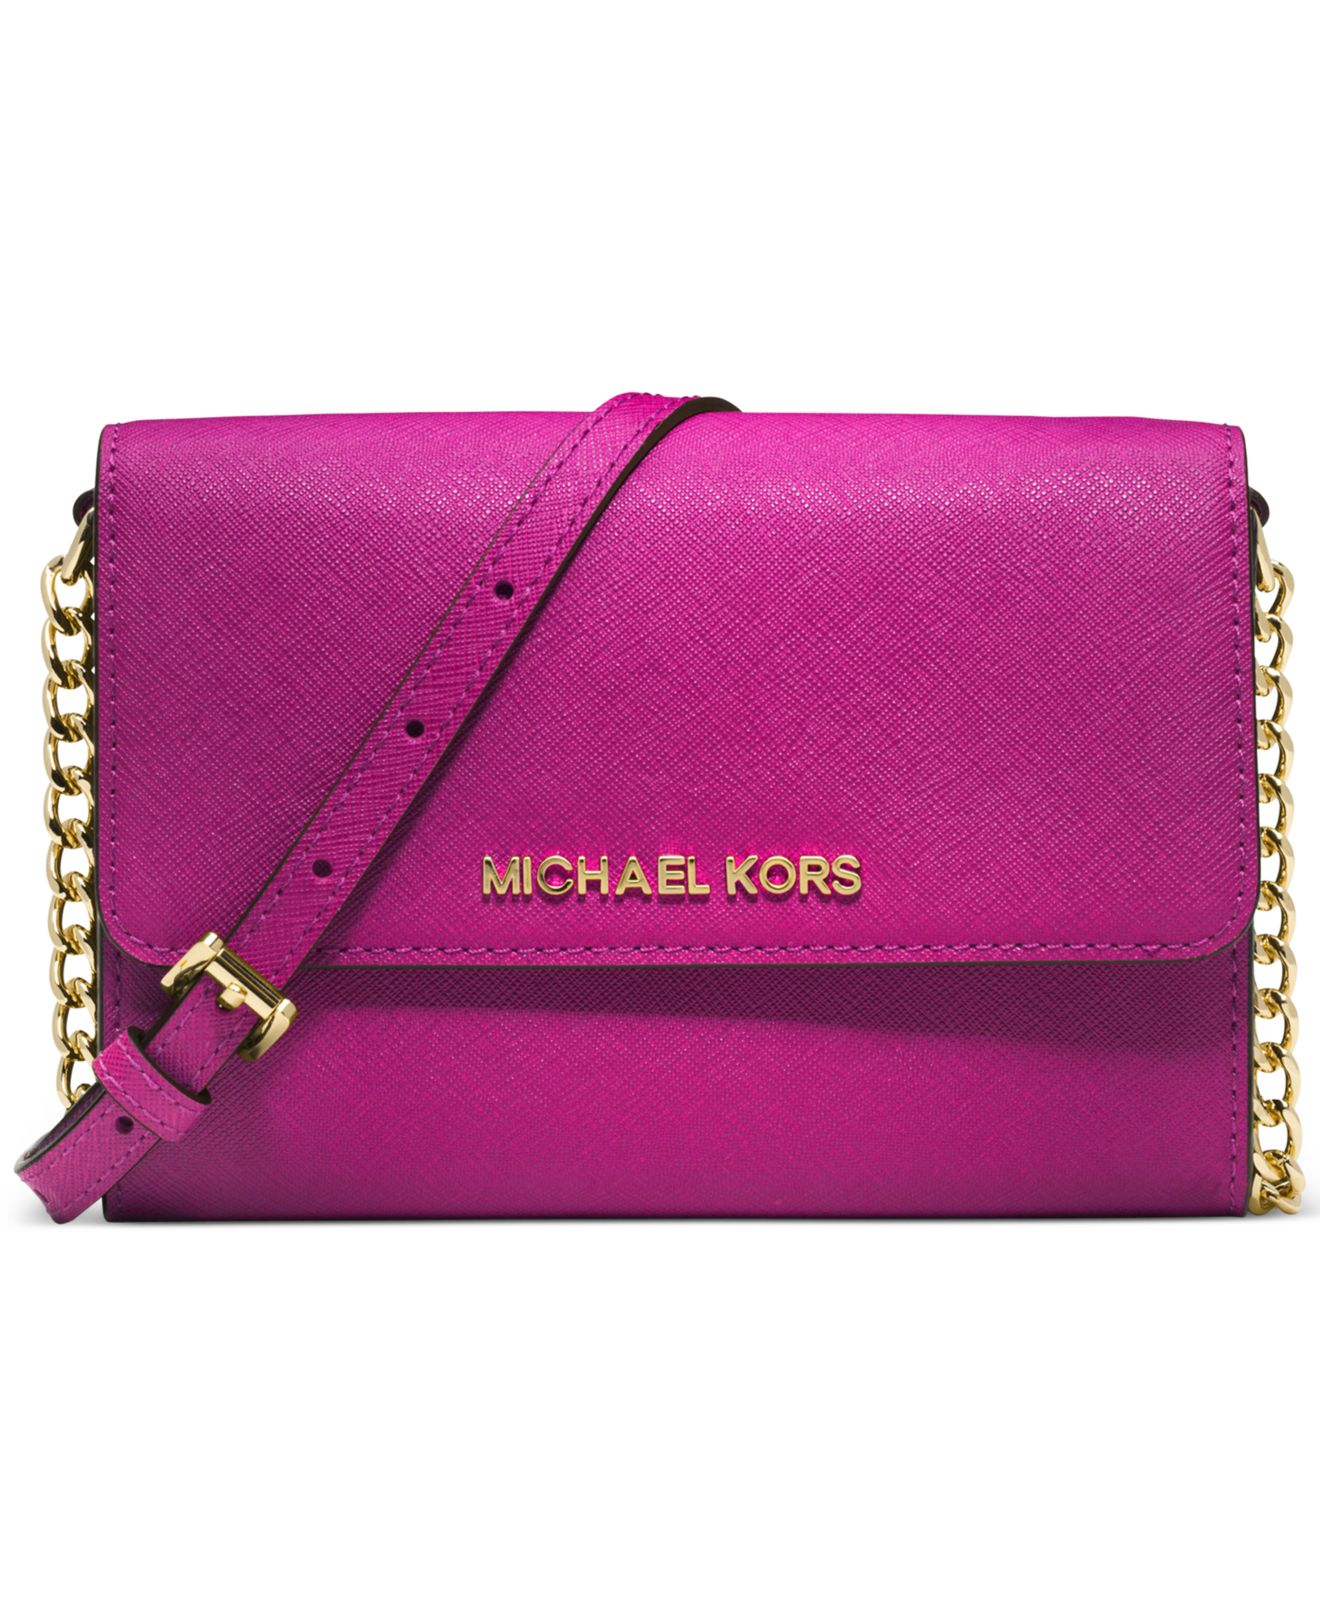 michael kors michael jet set crossbody in pink fuschia gold lyst. Black Bedroom Furniture Sets. Home Design Ideas